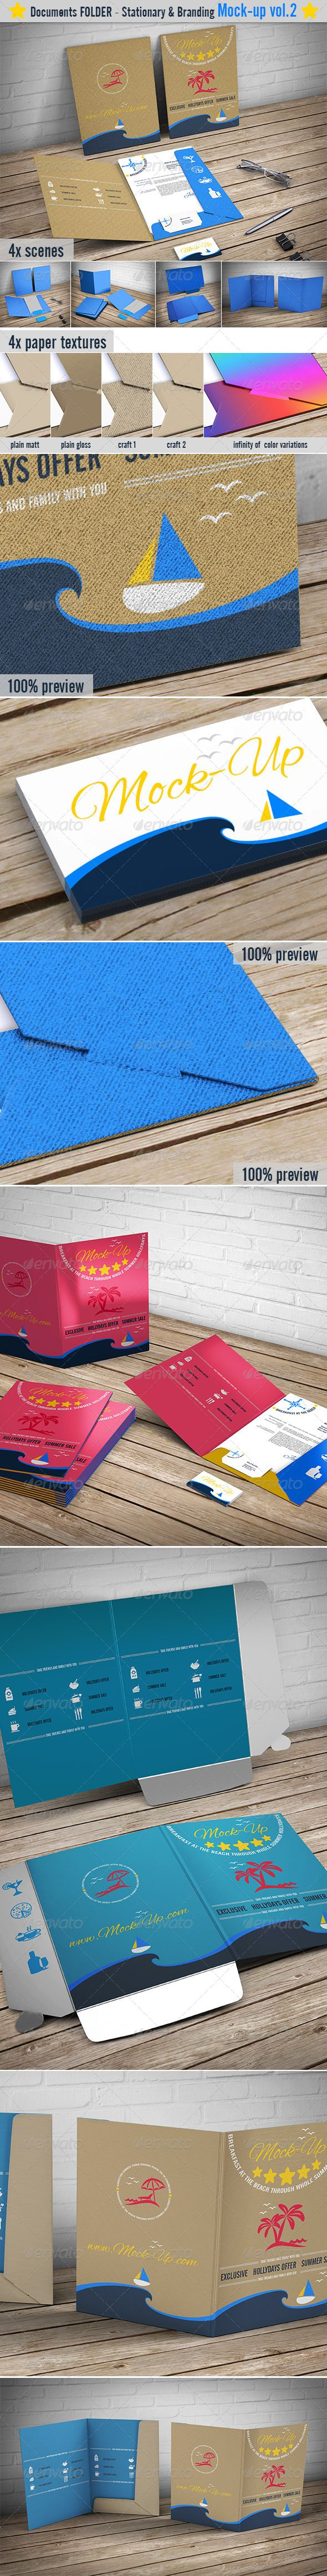 File Folder Mockup / Document Folder Mock-Up :  Check out this great #graphicriver item 'File Folder Mockup / Document Folder Mock-Up' http://graphicriver.net/item/file-folder-mockup-document-folder-mockup/7763802?ref=25EGY